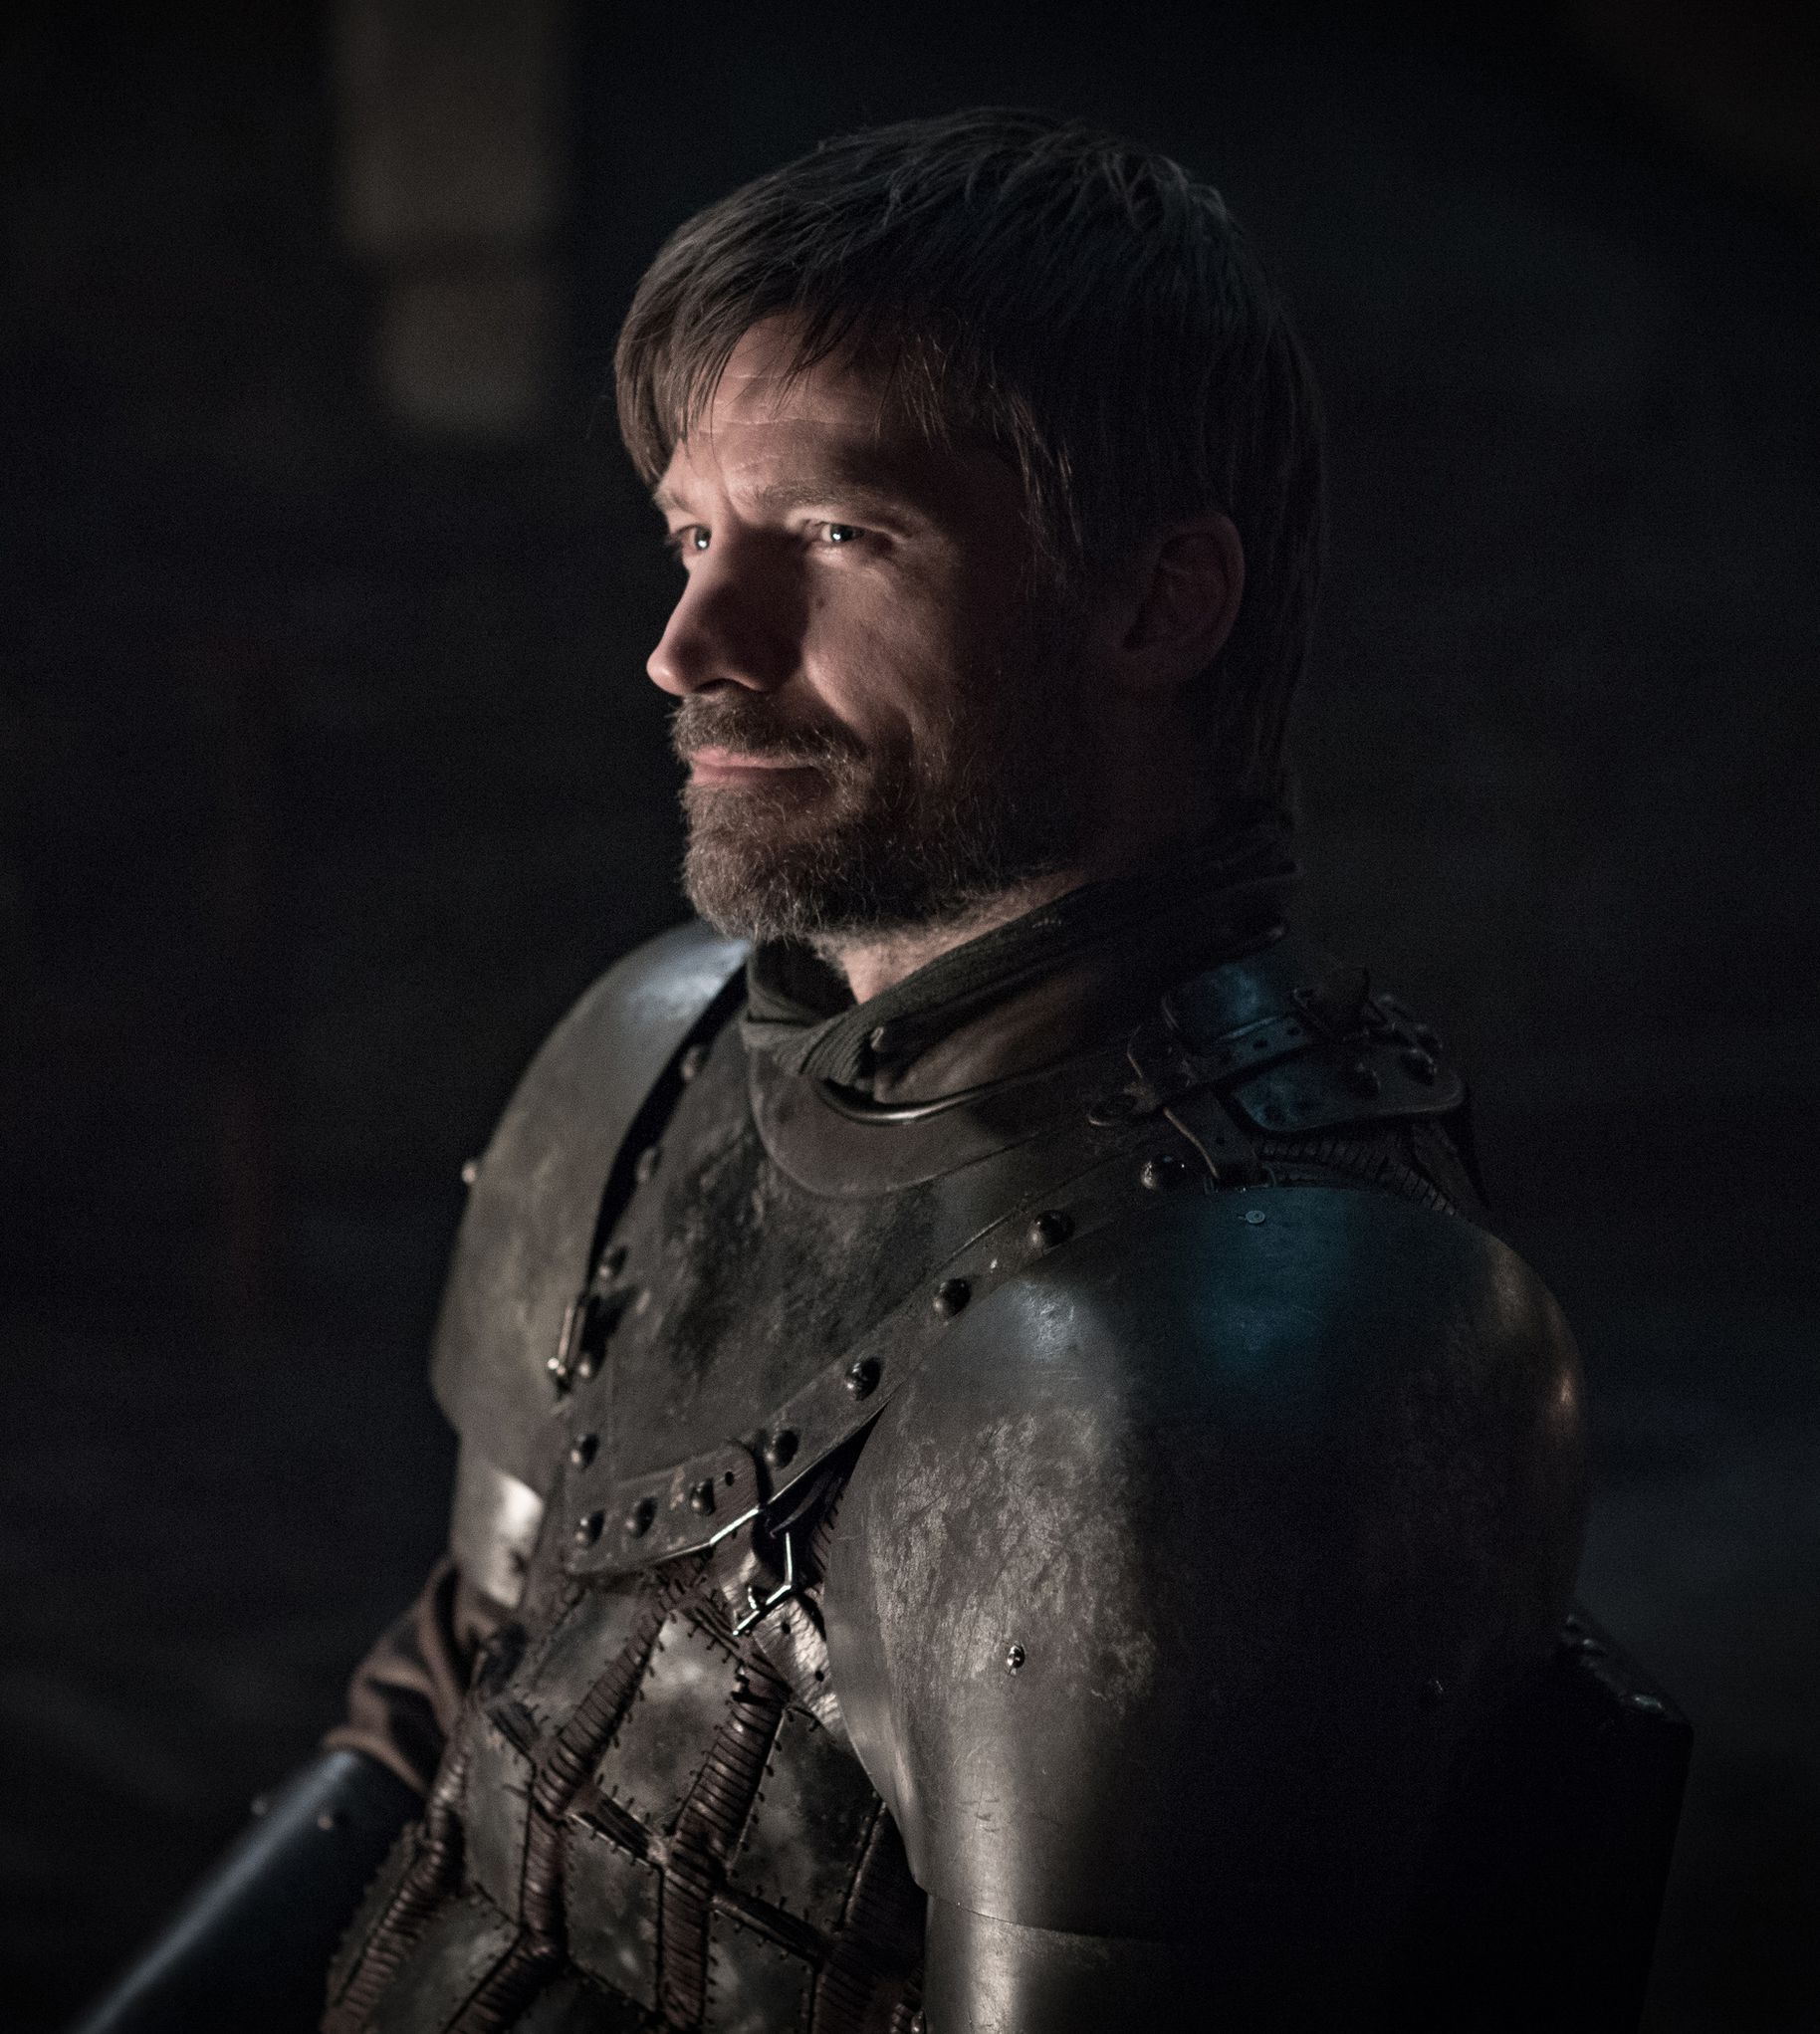 Game Of Thrones Fans Noticed A Season 8 Spoiler About Jaime Lannister